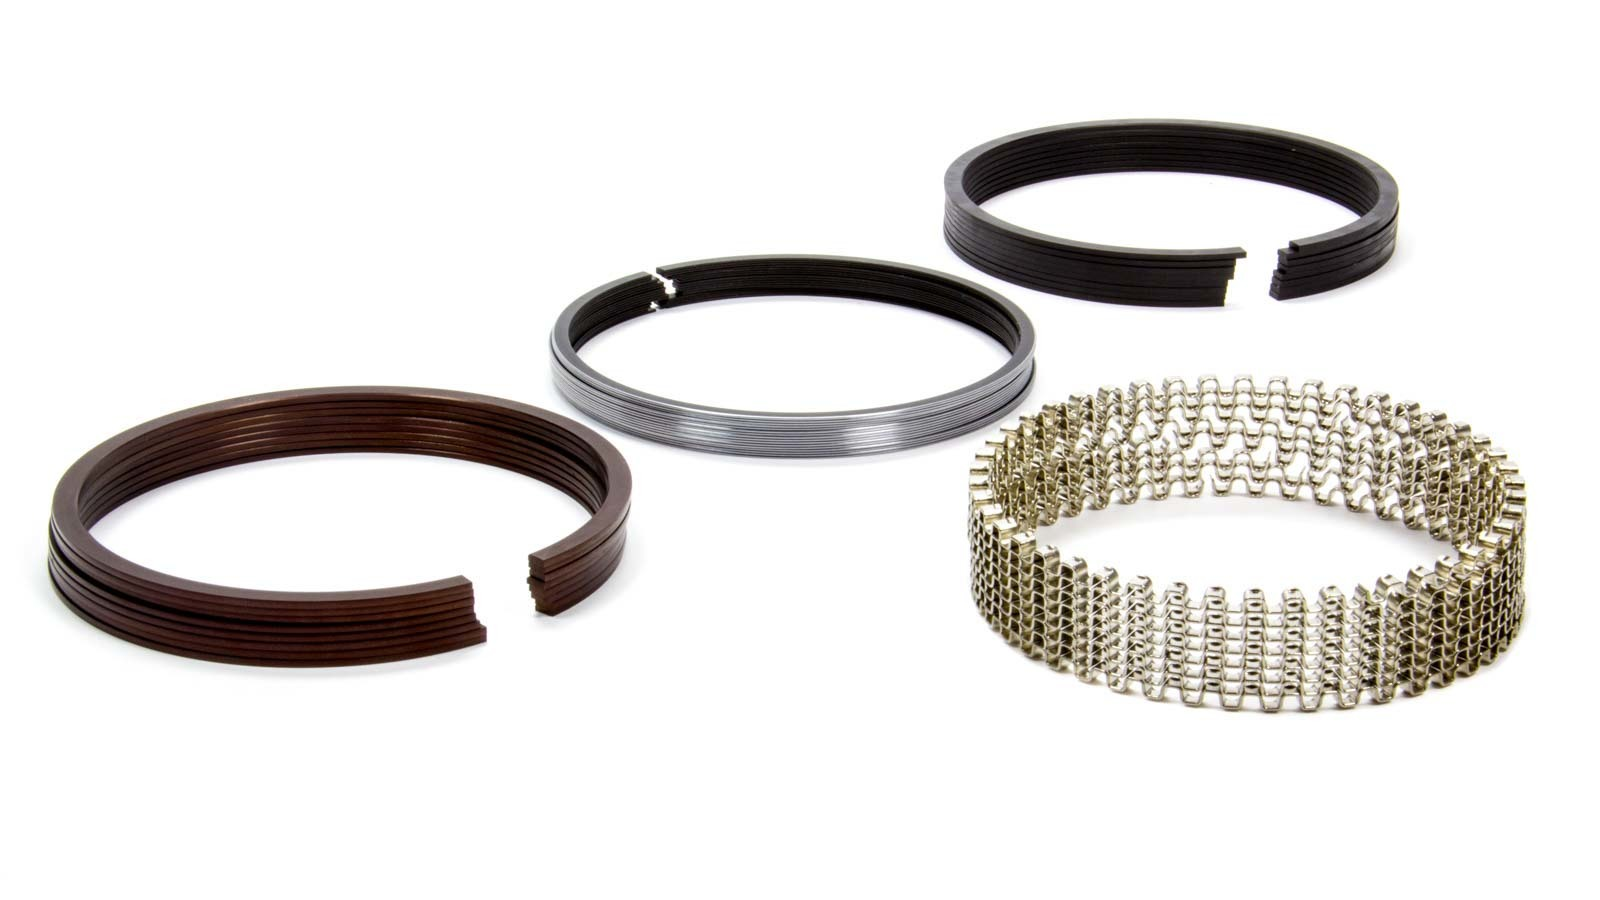 Total Seal CT0690-5 Piston Rings, TNT, 4.125 in Bore, File Fit, 1/16 x 1/16 x 3/16 in Thick, Standard Tension, Ductile Iron, 8 Cylinder, Kit